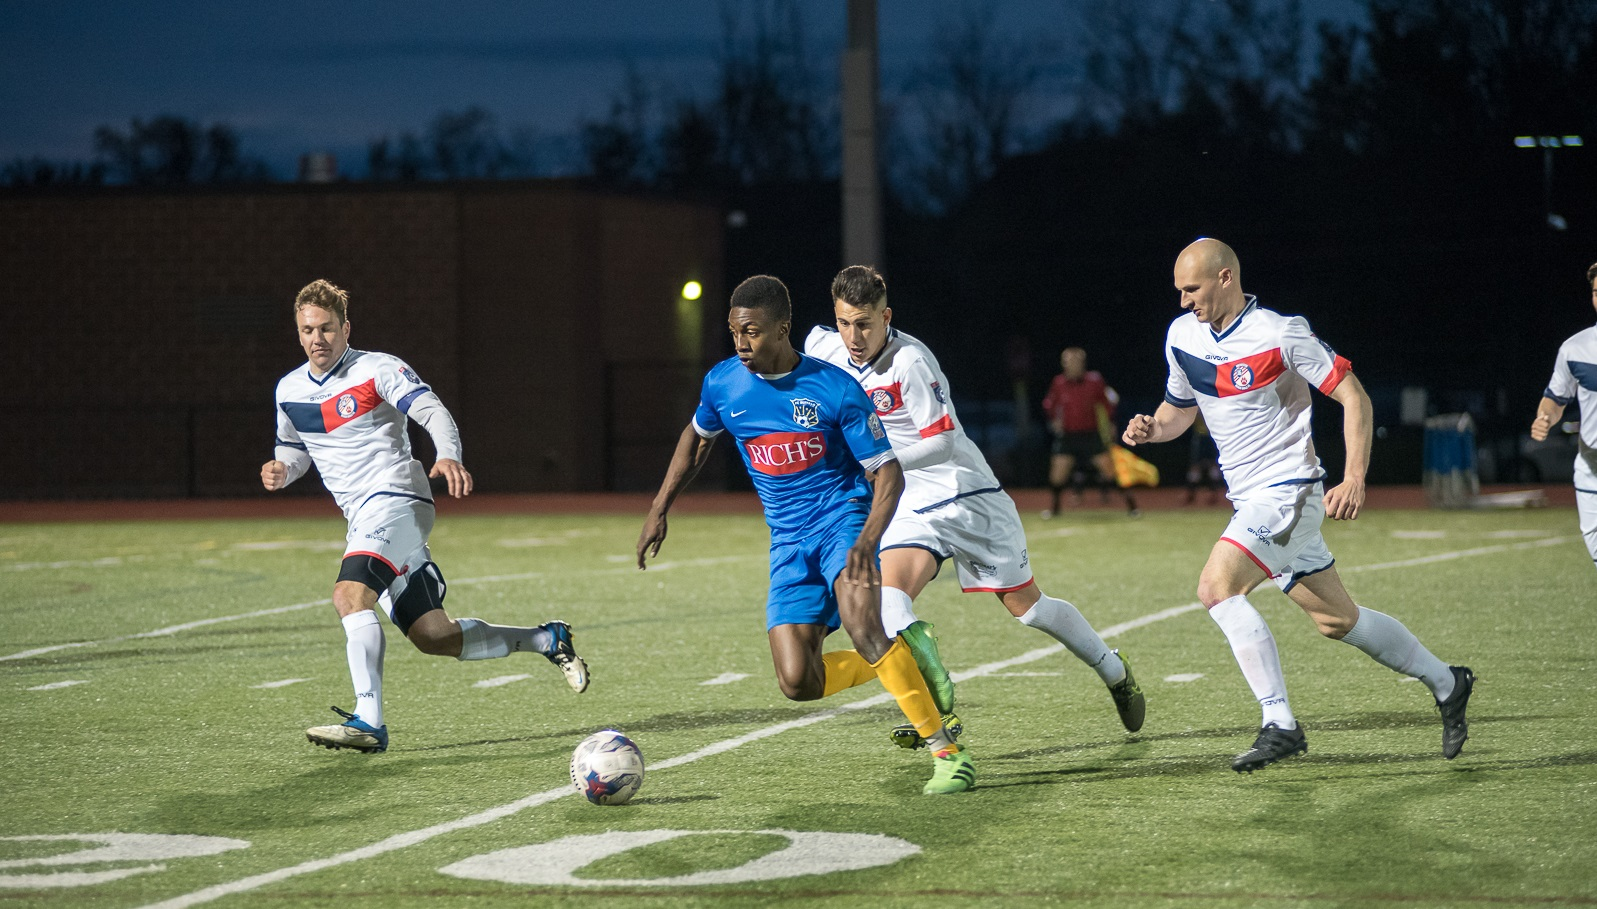 FC Buffalo's Isaiah Barrett, in blue, tries to elude three Rochester River Dogz defenders in the season opener. (Matt Weinberg/Special to The News)